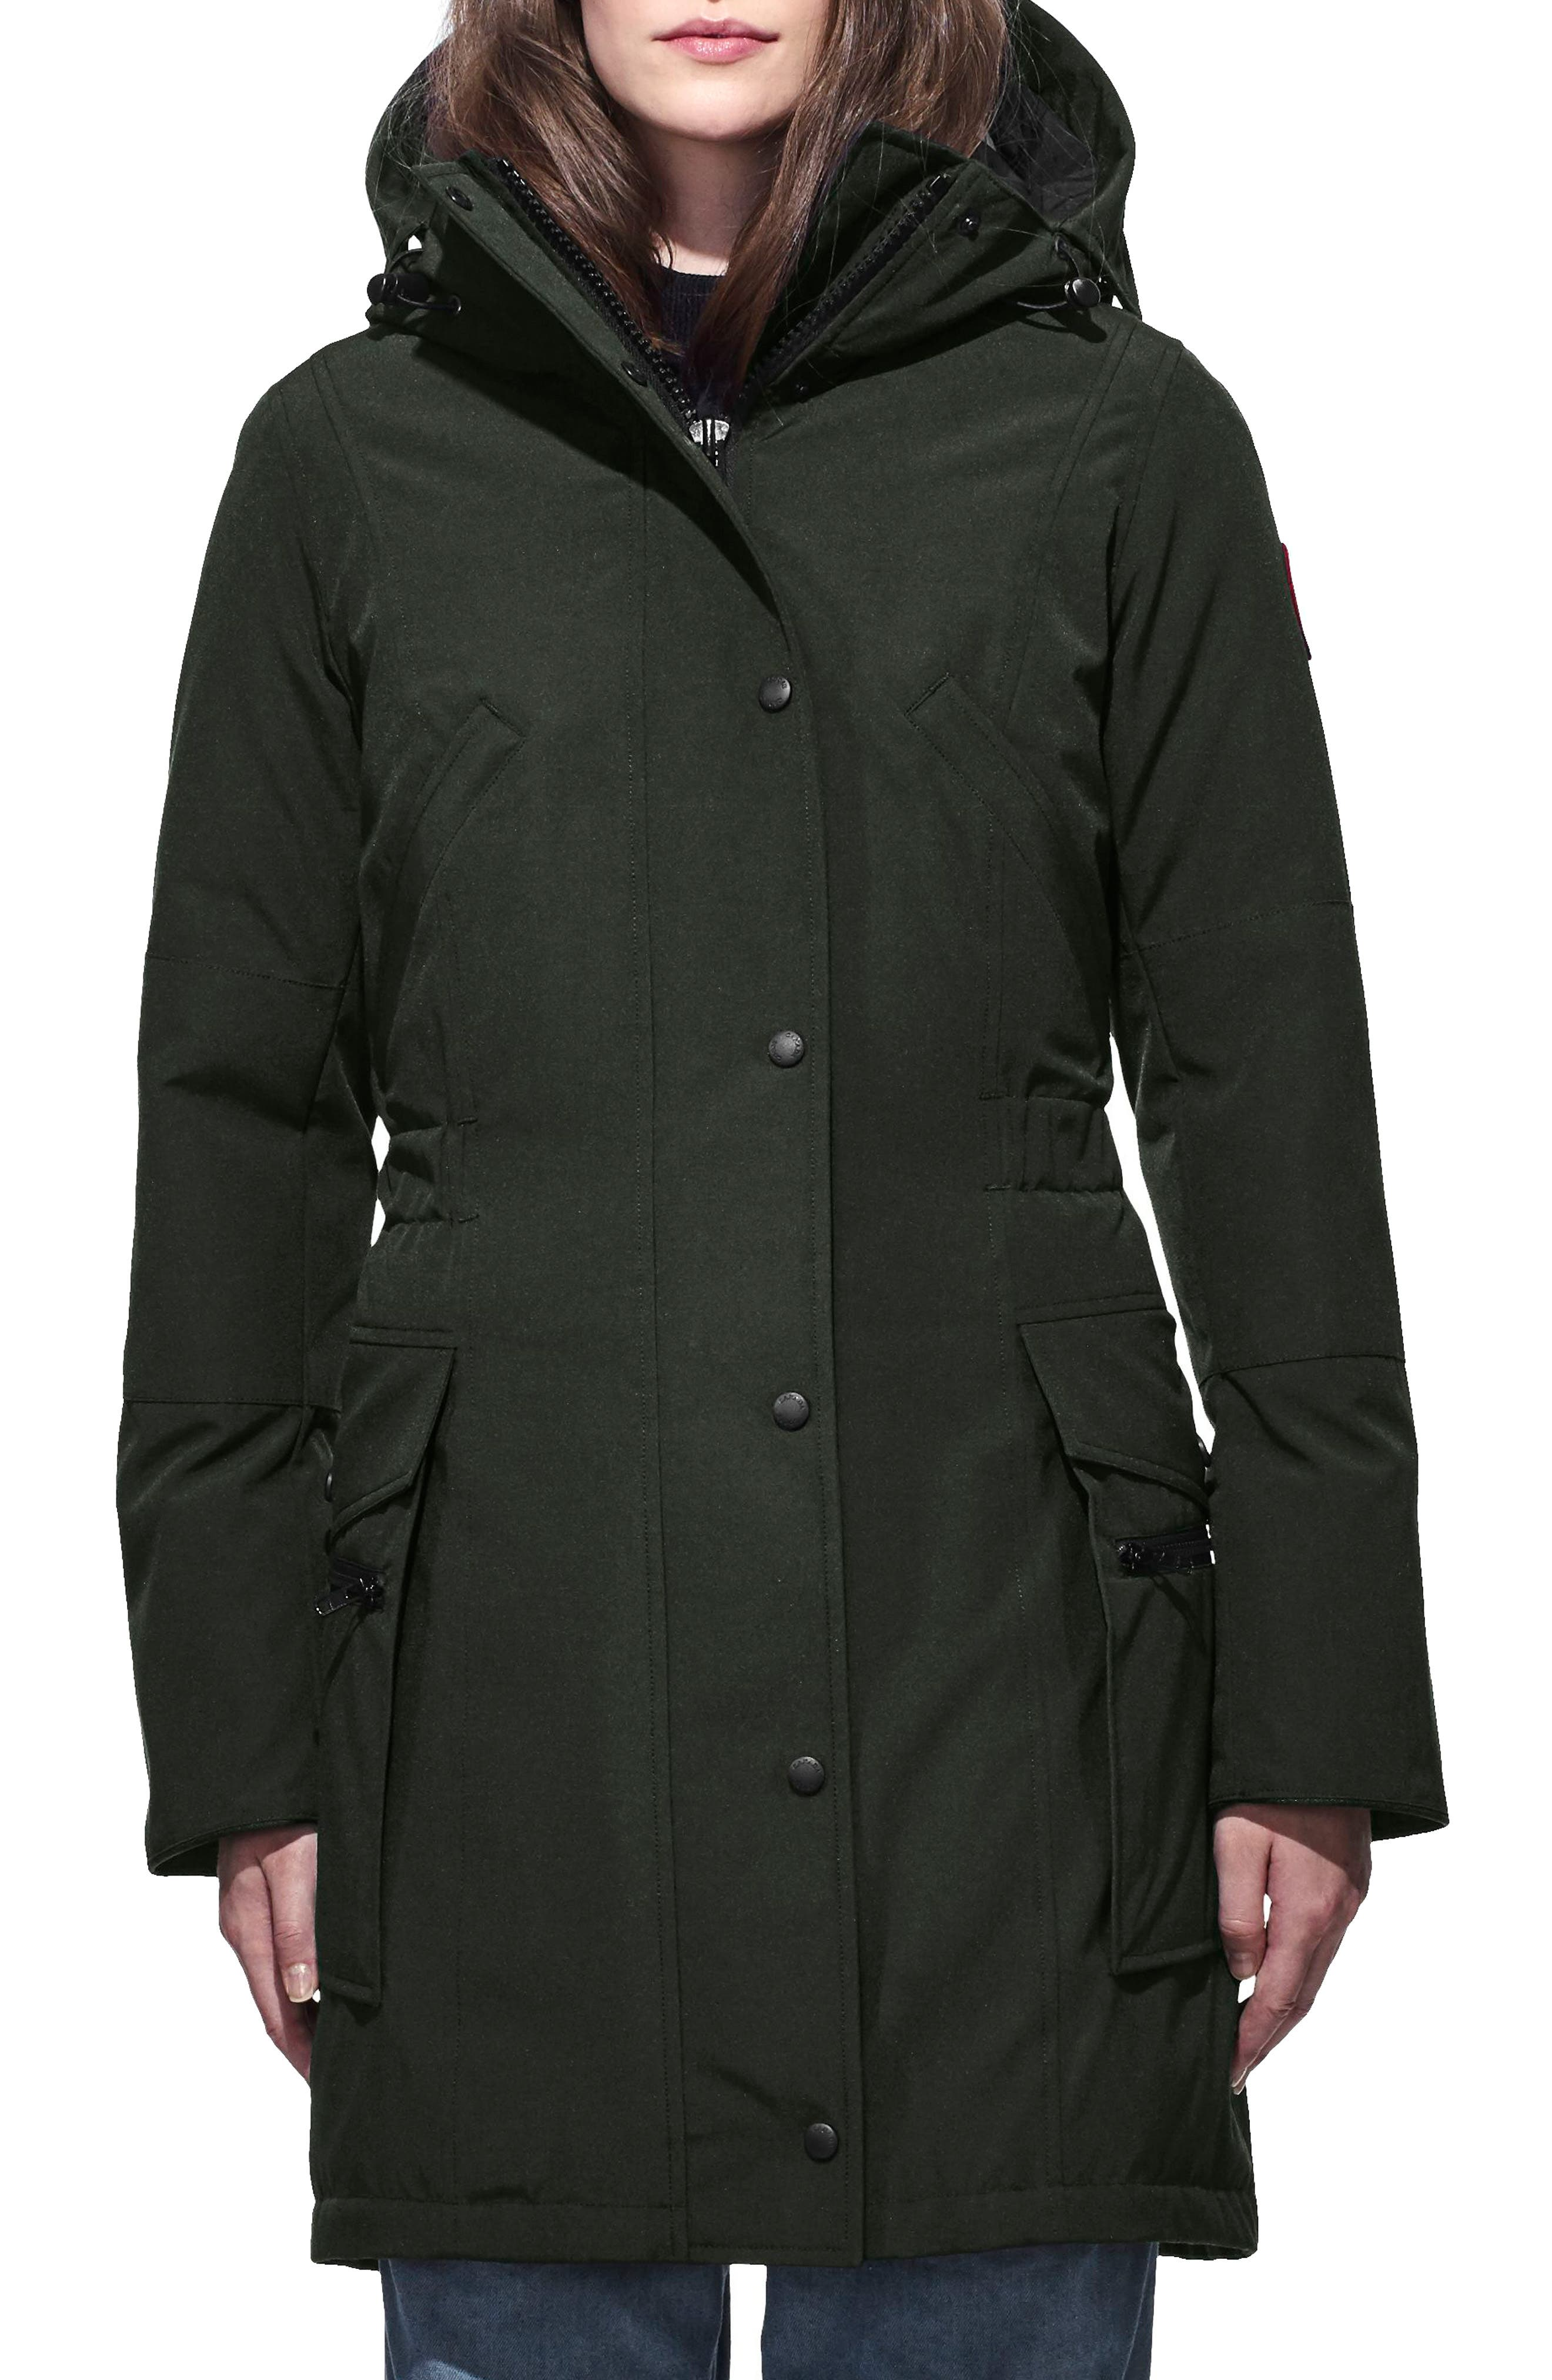 Kinley Insulated Parka,                             Main thumbnail 1, color,                             VOLCANO